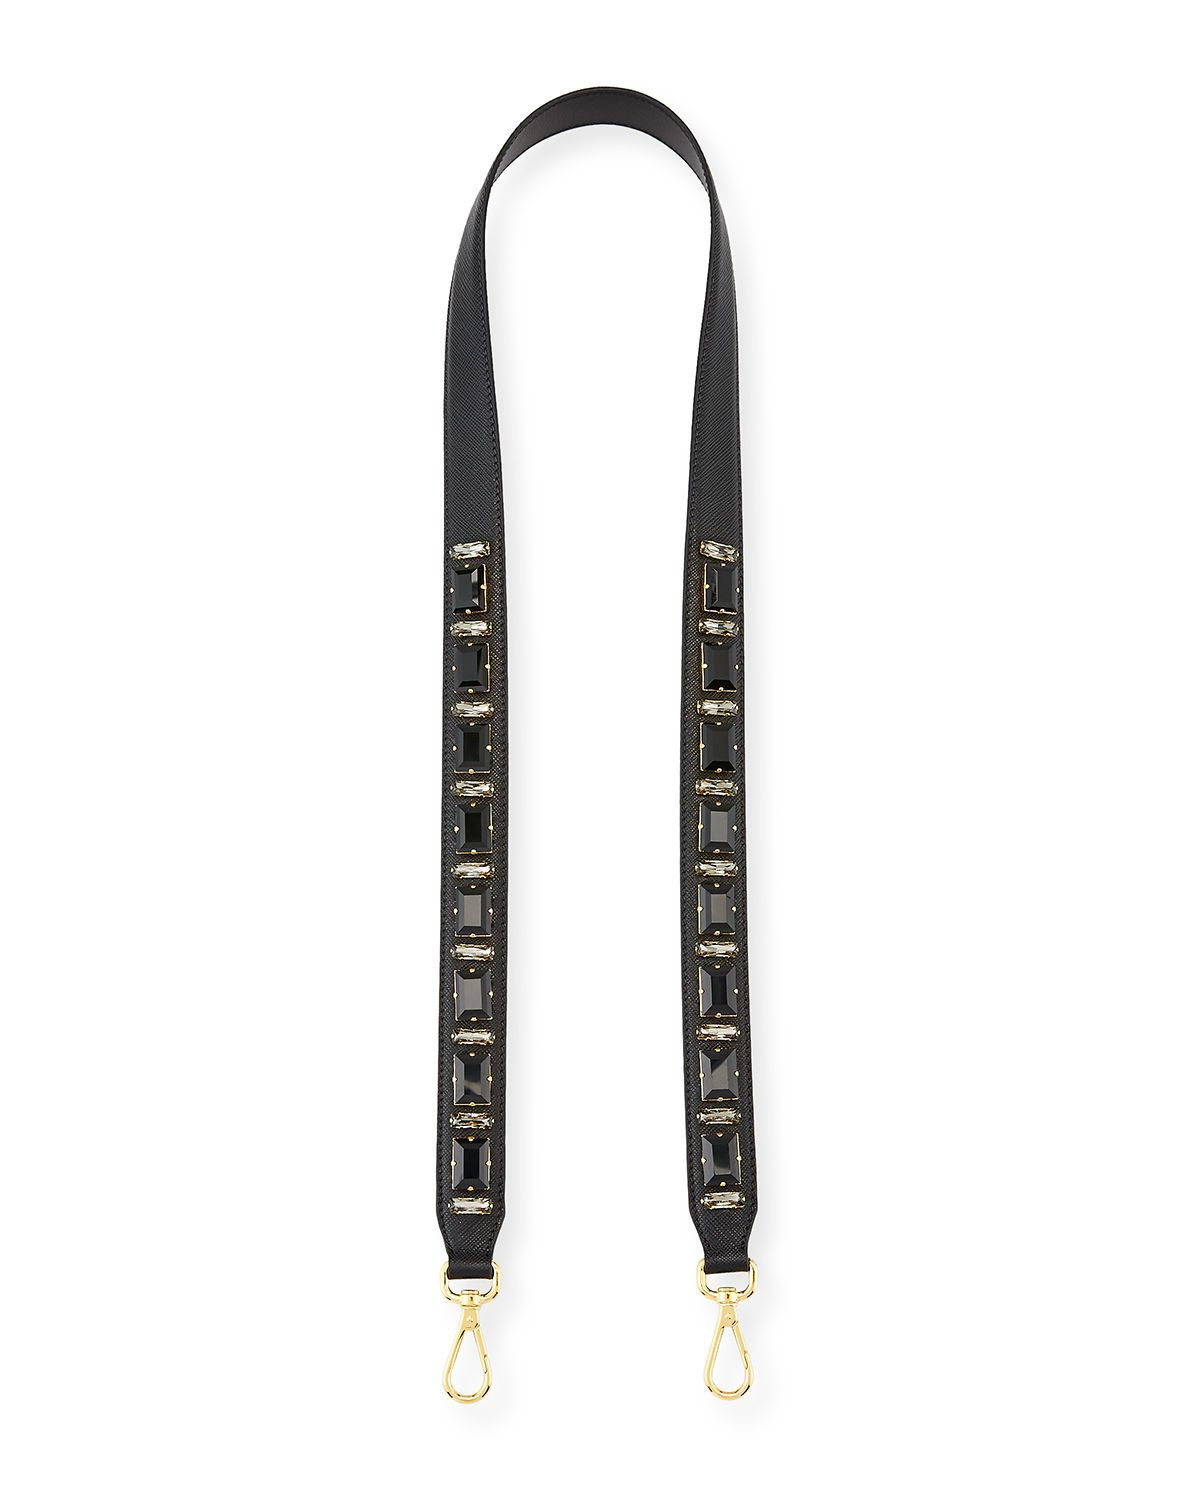 Jeweled Saffiano Strap for Handbag